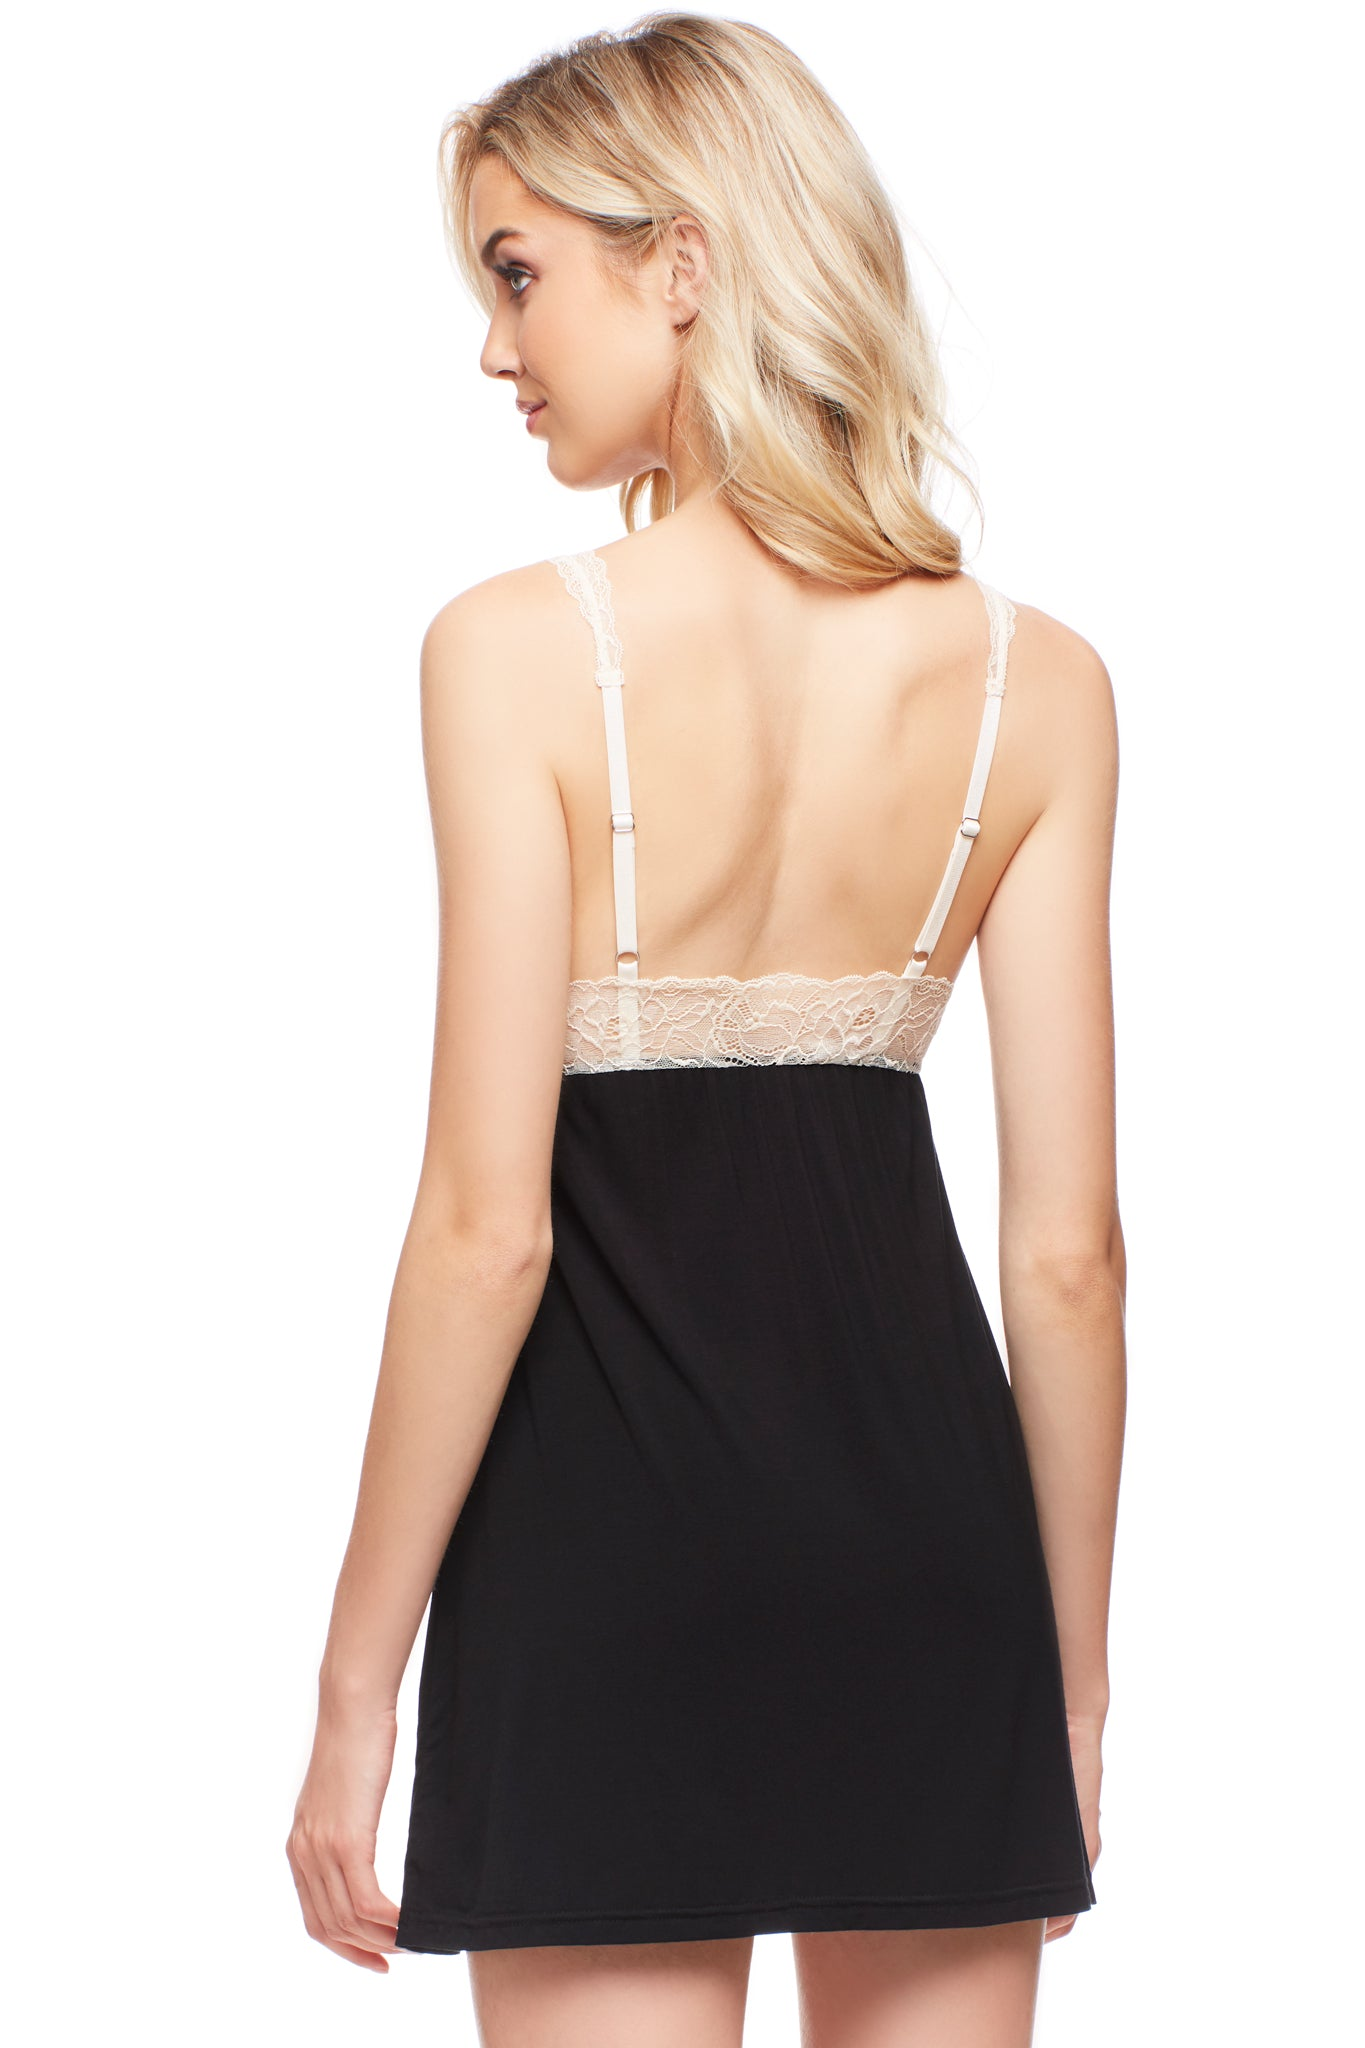 a12fdbba293 Sexy Chloe Womens Lace Chemise